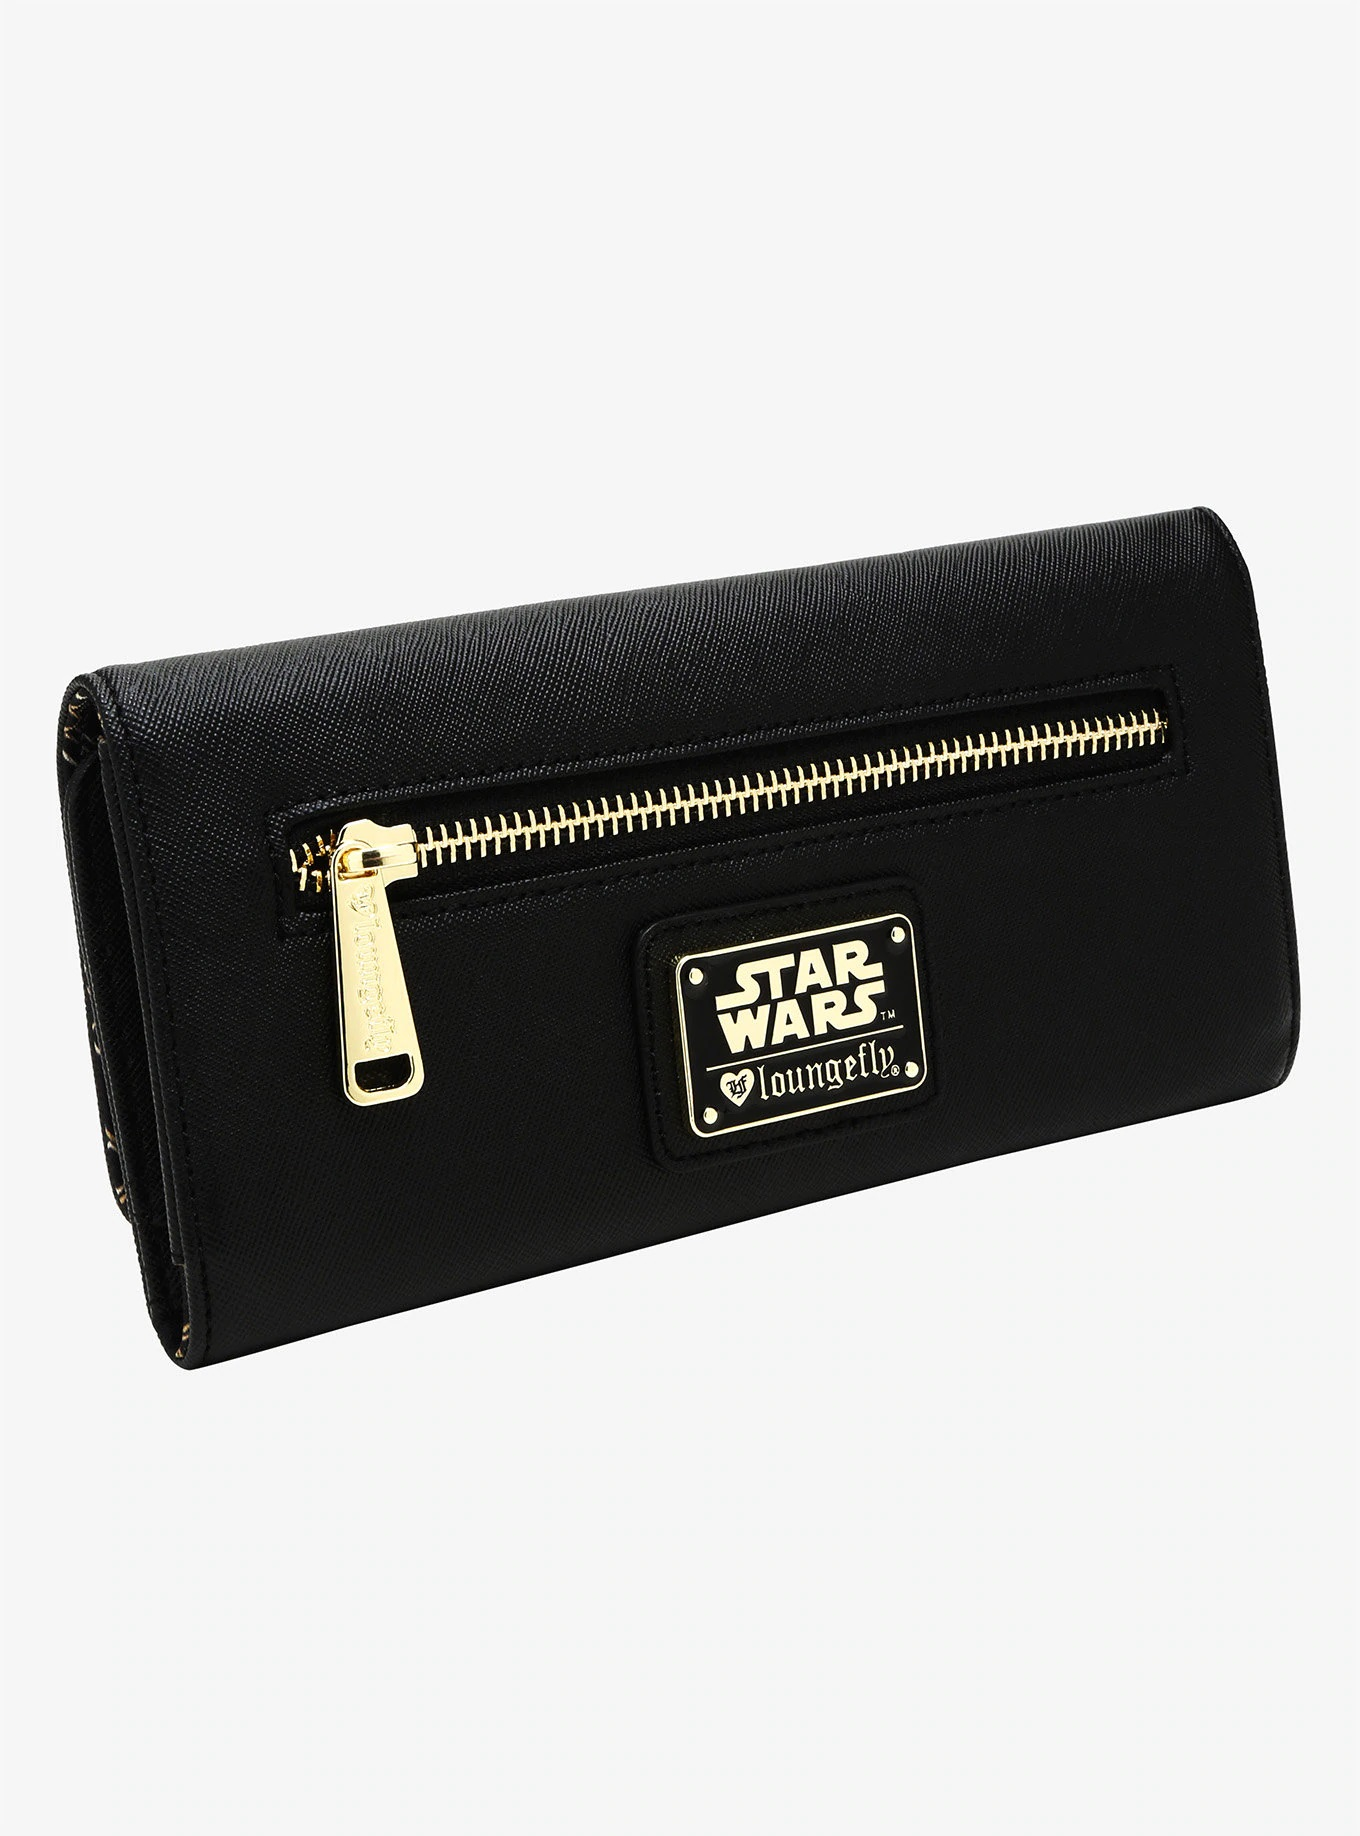 Loungefly x Star Wars The Last Jedi Rule The Galaxy Wallet at Box Lunch